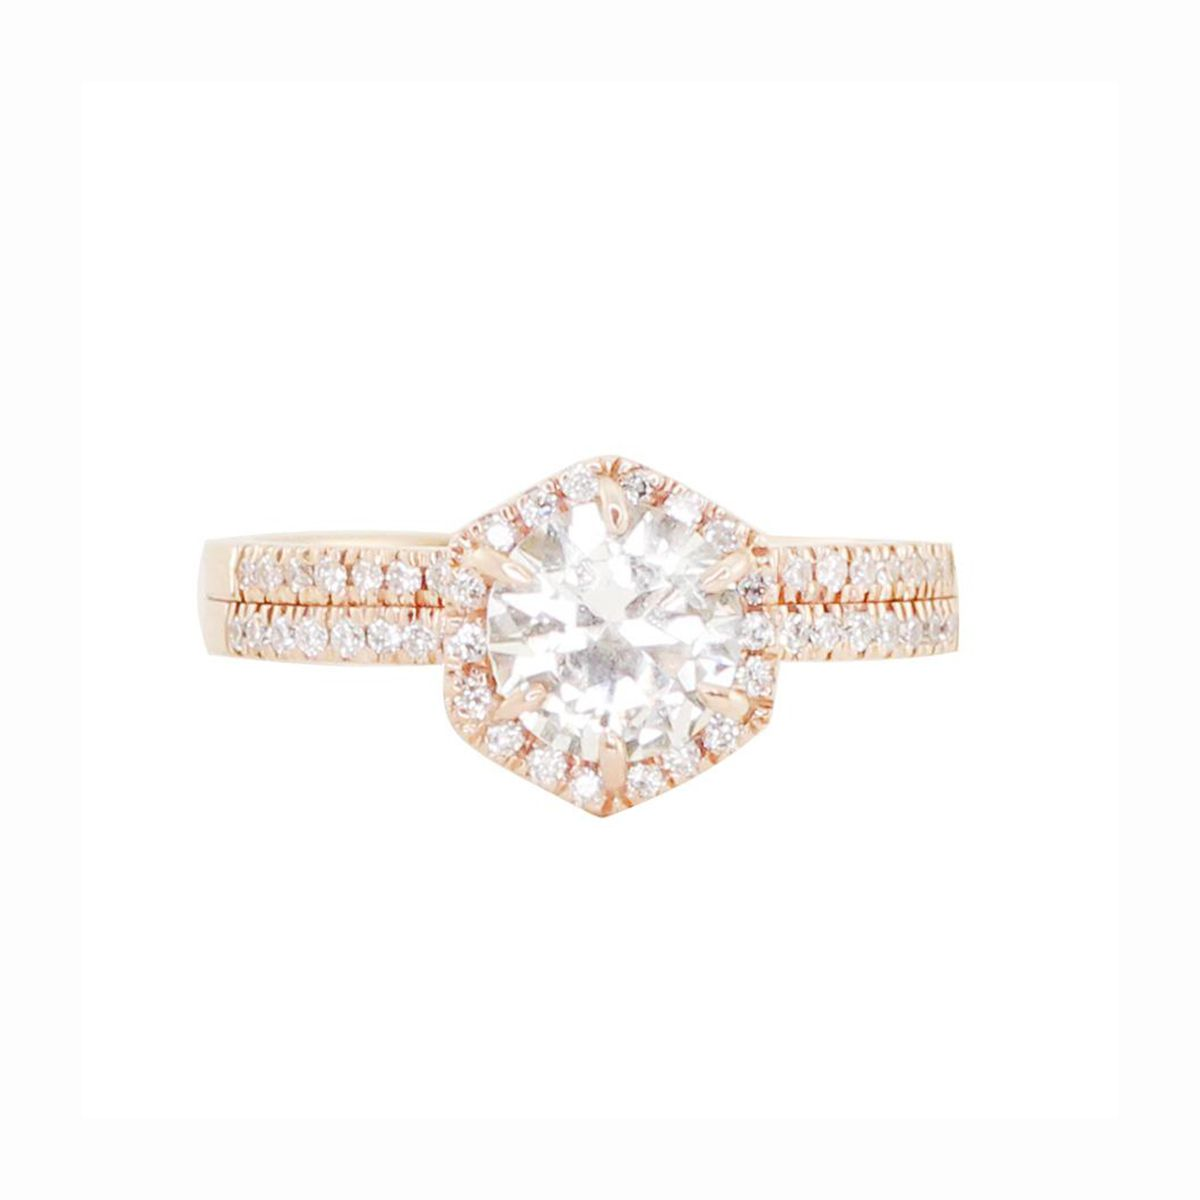 Round diamond on gold hexagon setting with diamond crown on a double band with diamond pave